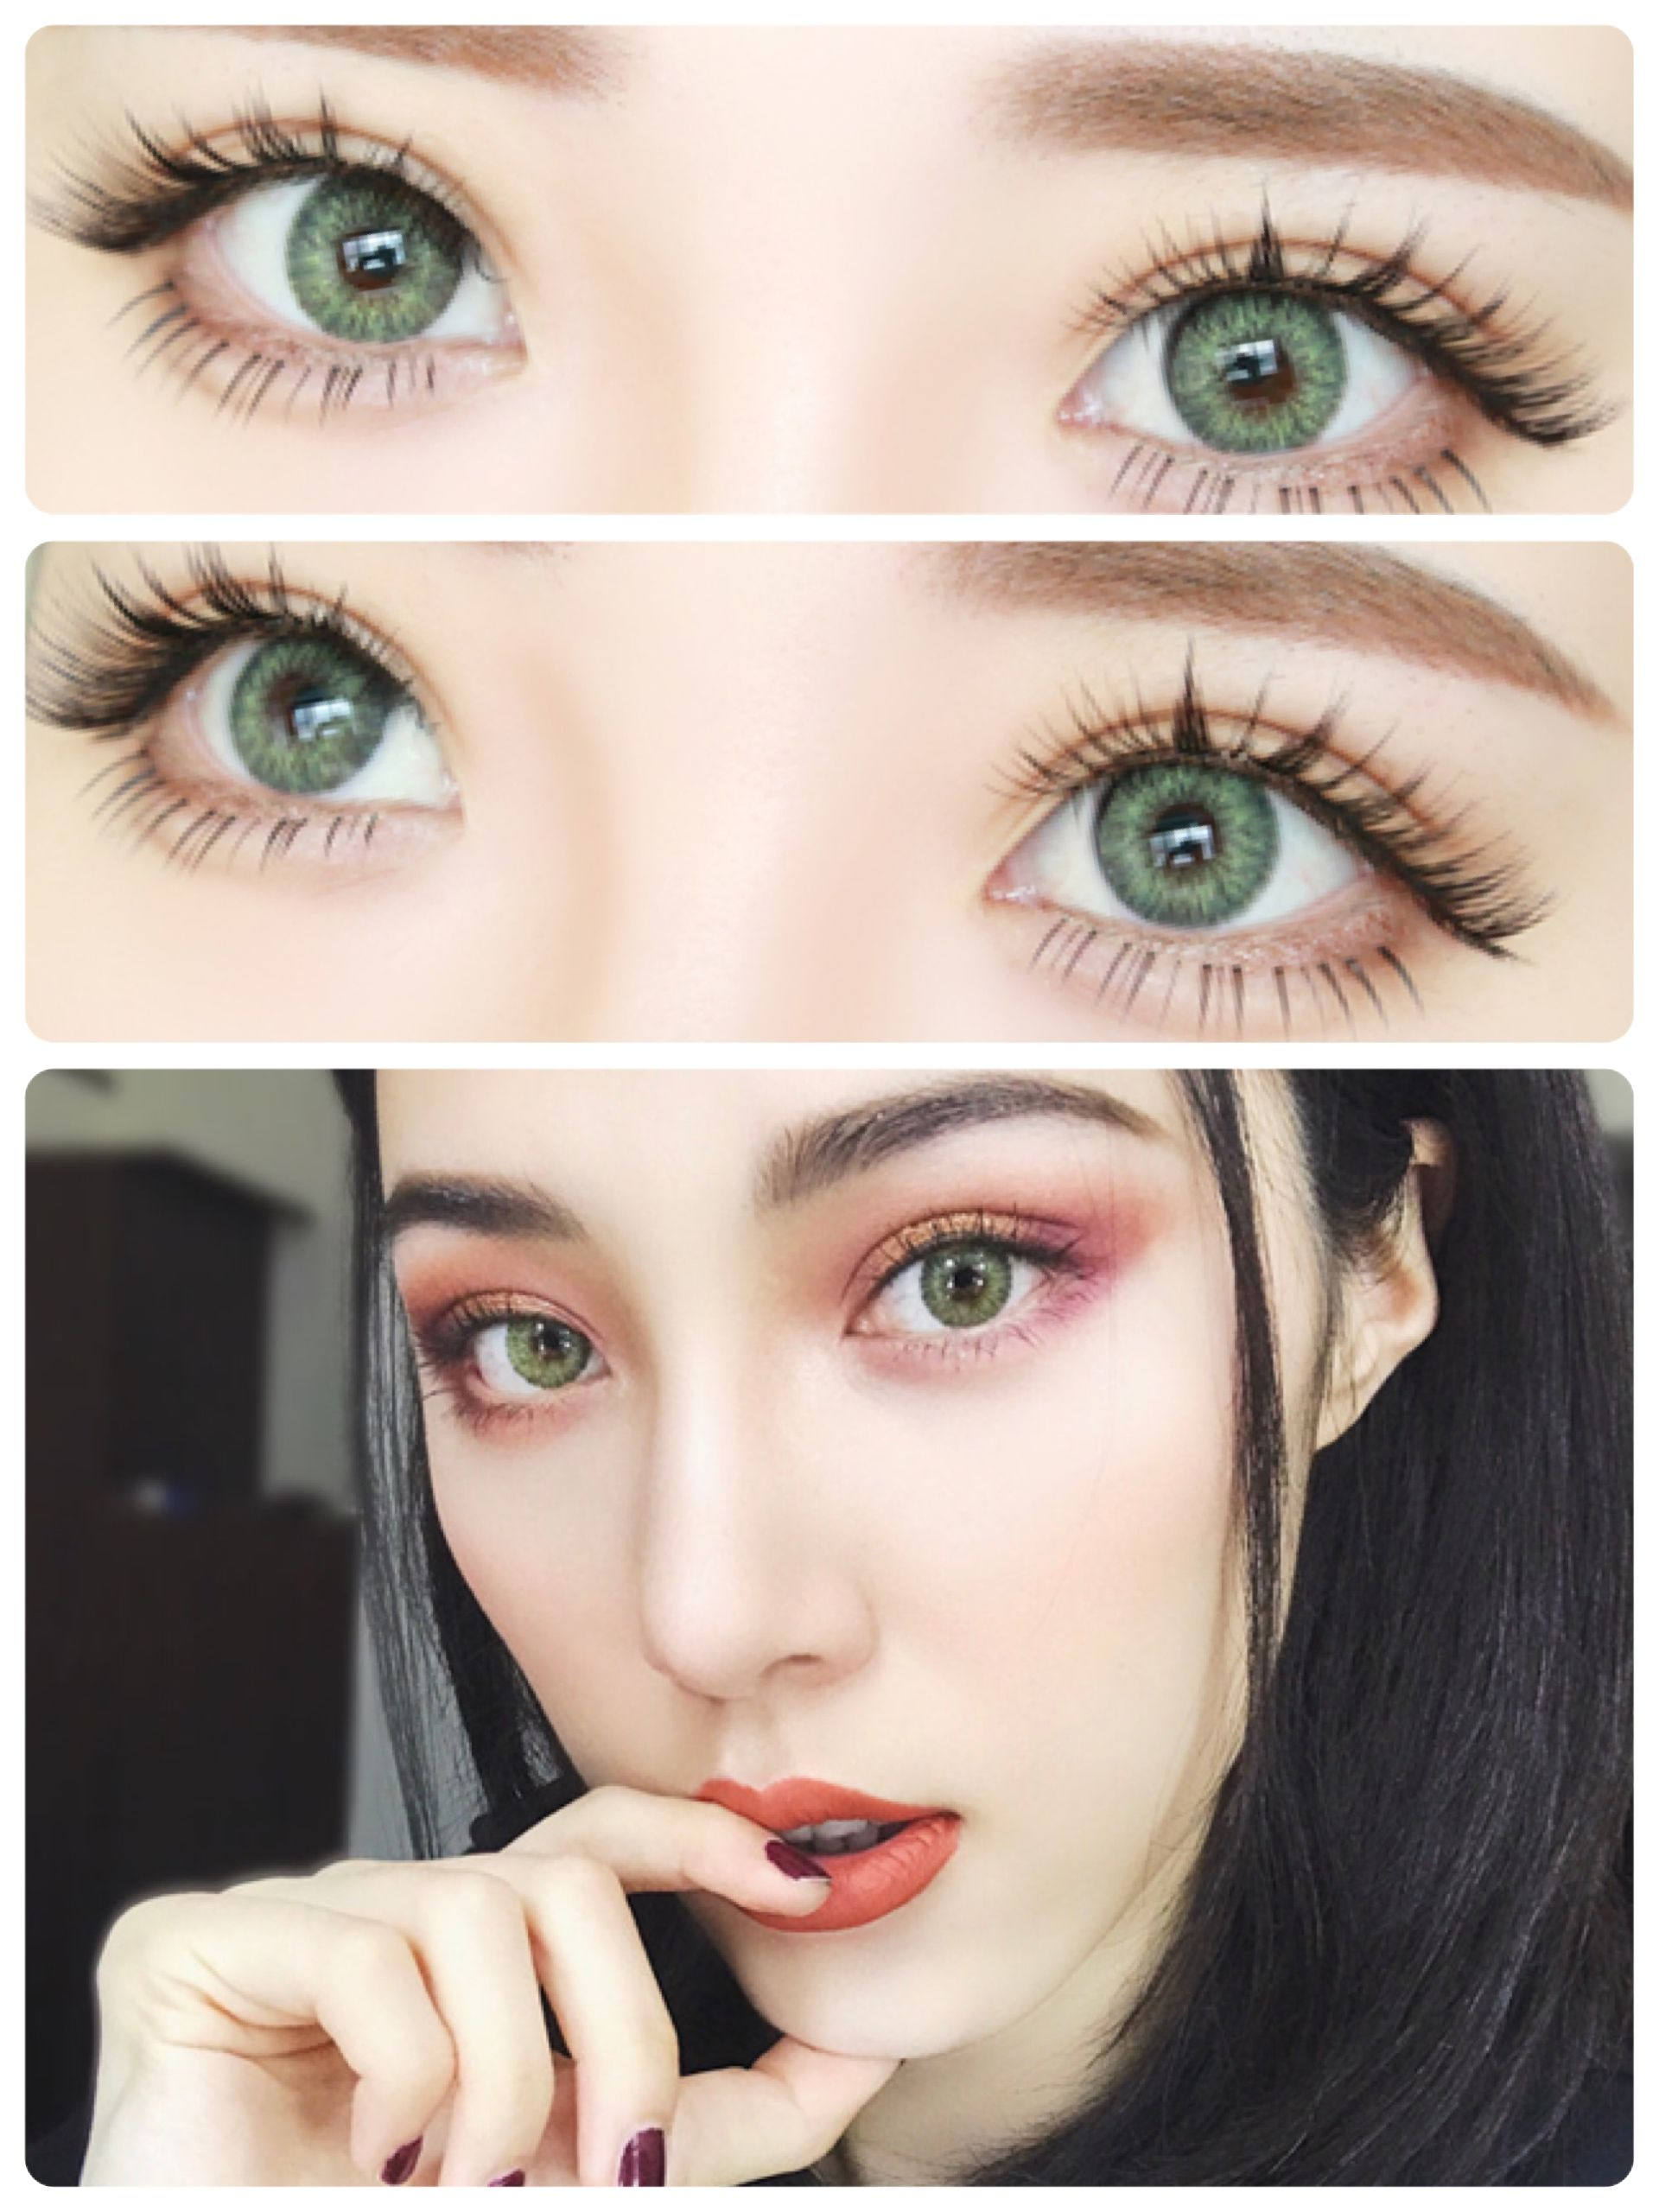 Freshlook Colored Contact Lenses From Eyecandys These Lenses Are Great For Dark Or Black Eyes Shop Green Colored Contacts Colored Contacts Eye Contact Lenses